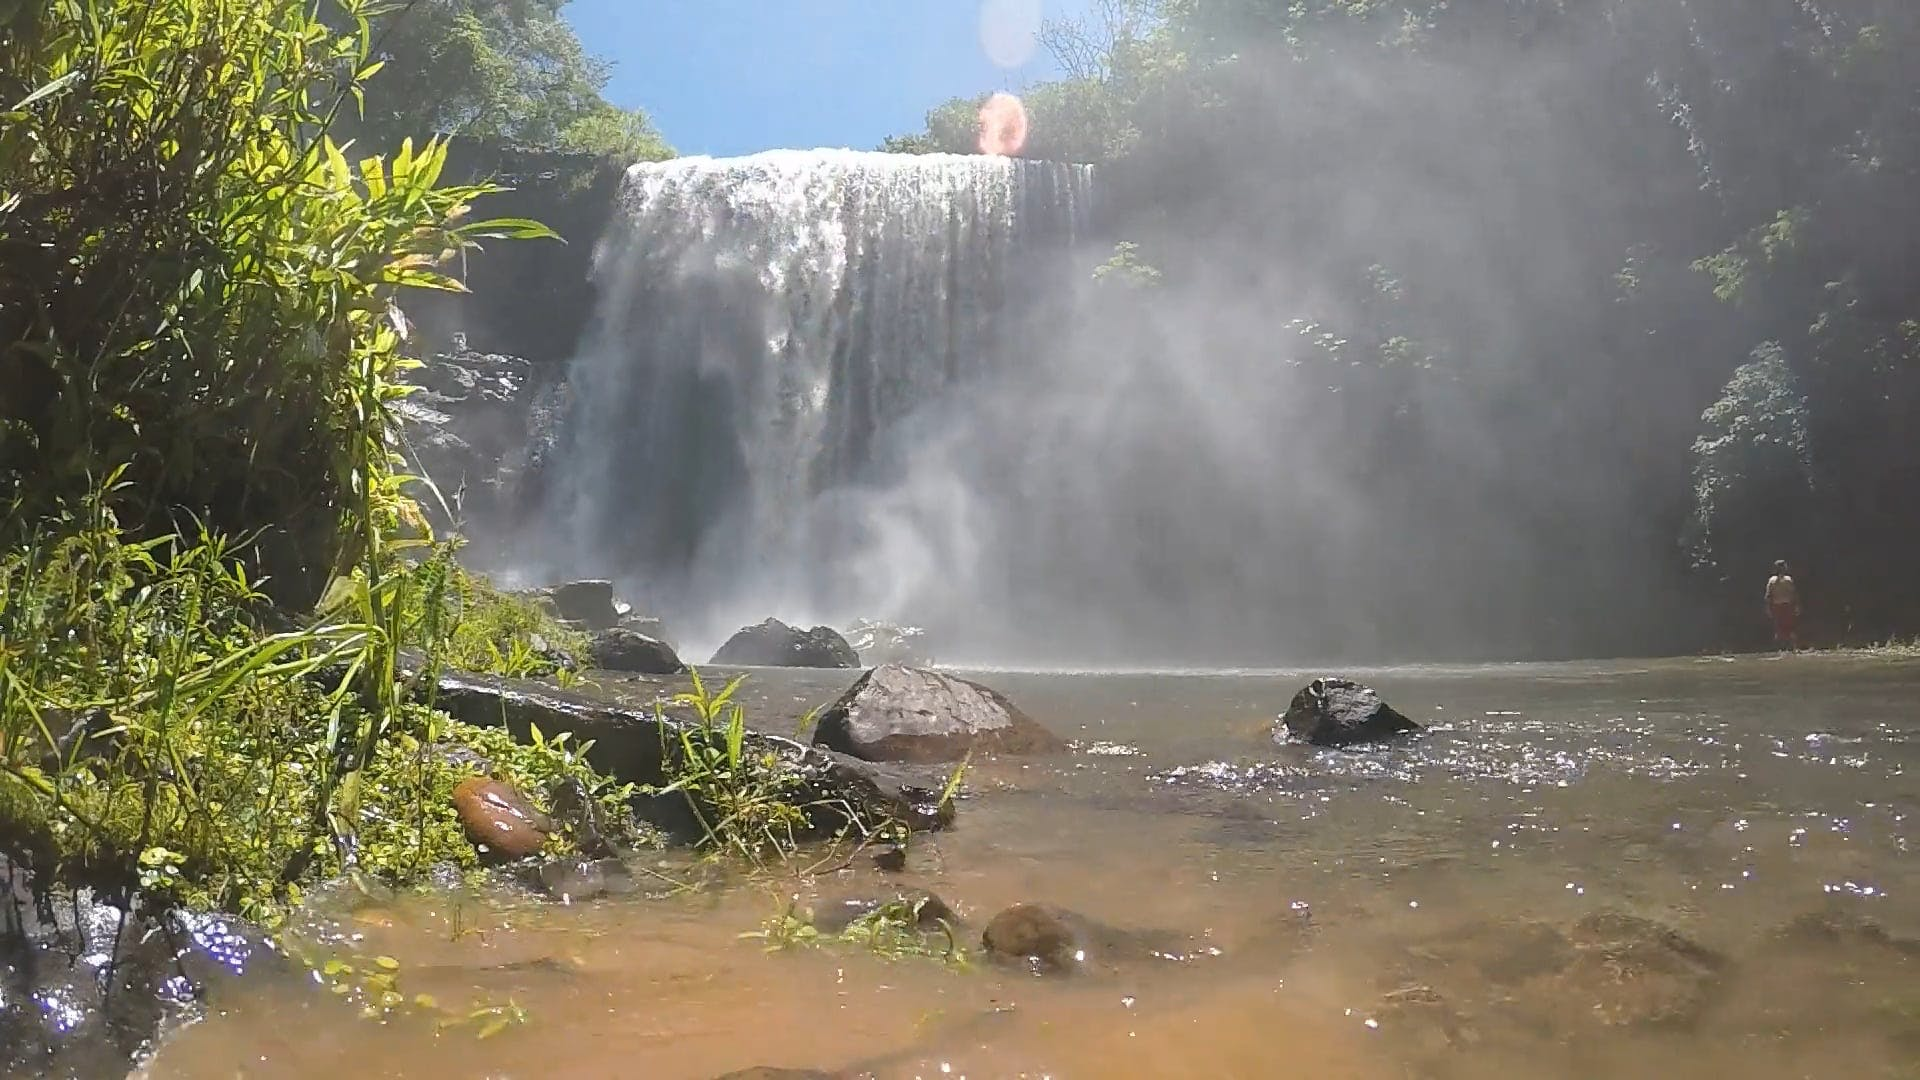 Video Footage Of Waterfalls